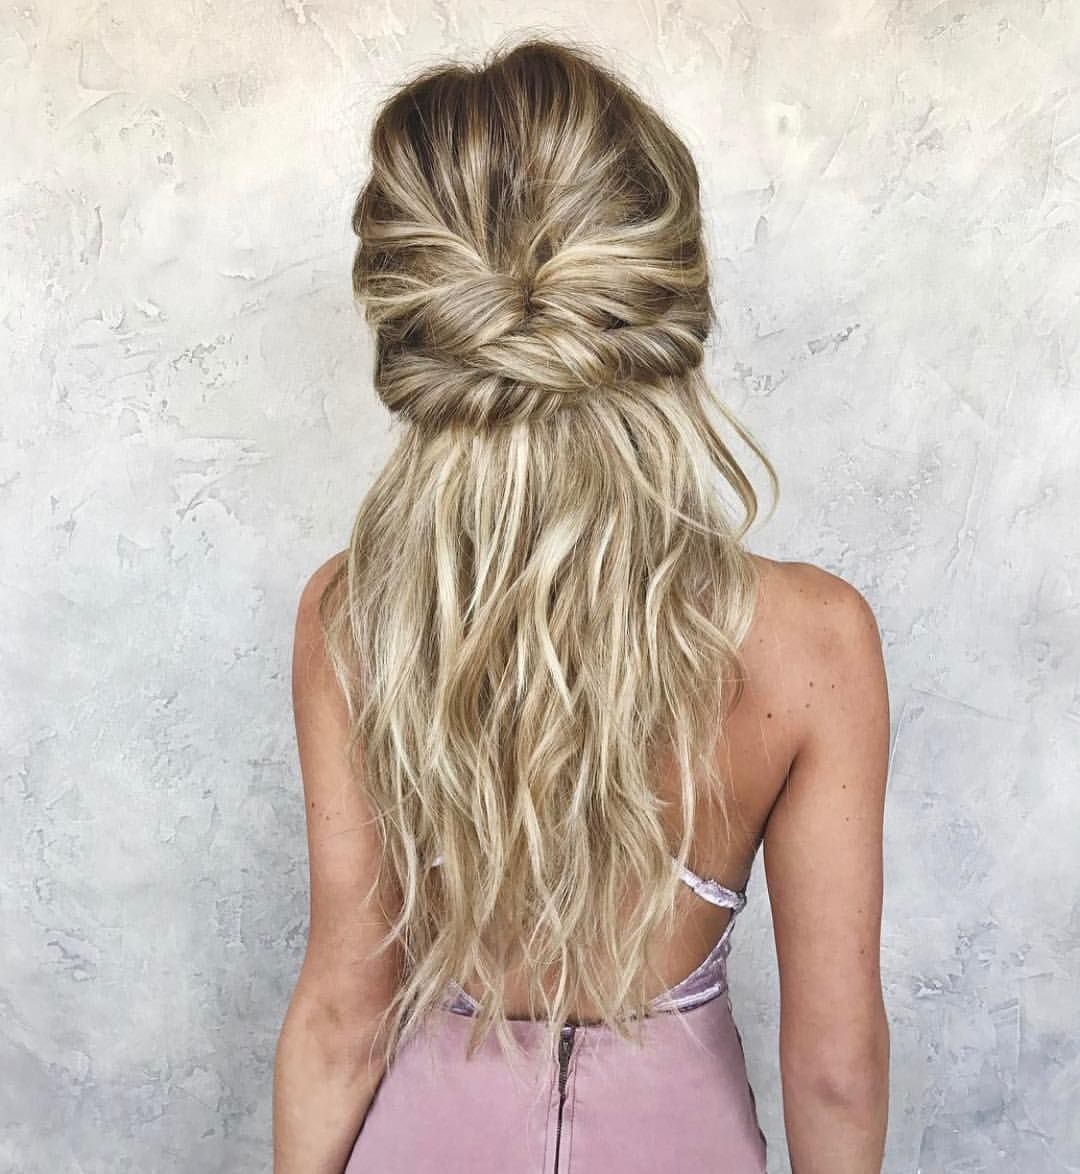 Latest Hair Style 2018 Attend Wedding Hair Tied Back: Pin By Kaylah Preece On Hairstyles In 2019